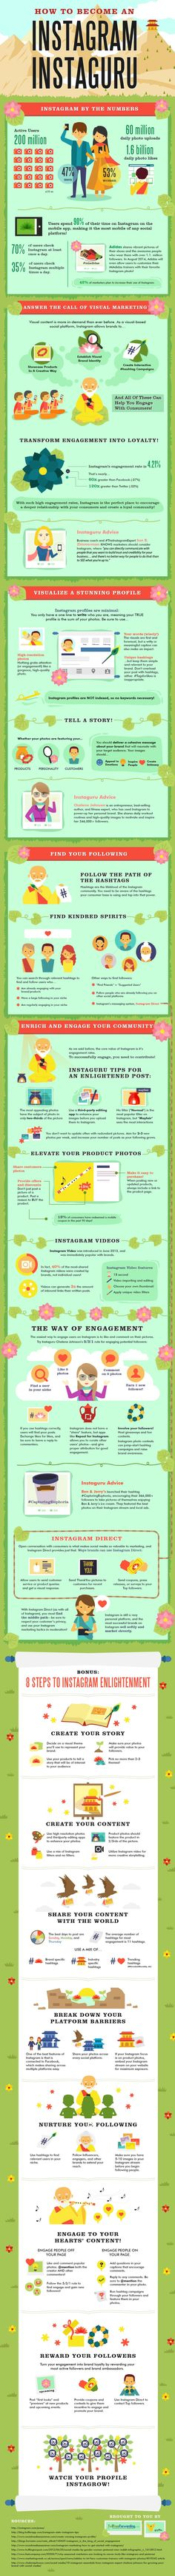 #Instagram #Facts on how to tell #YourStory and get #Shares #SocialMedia…